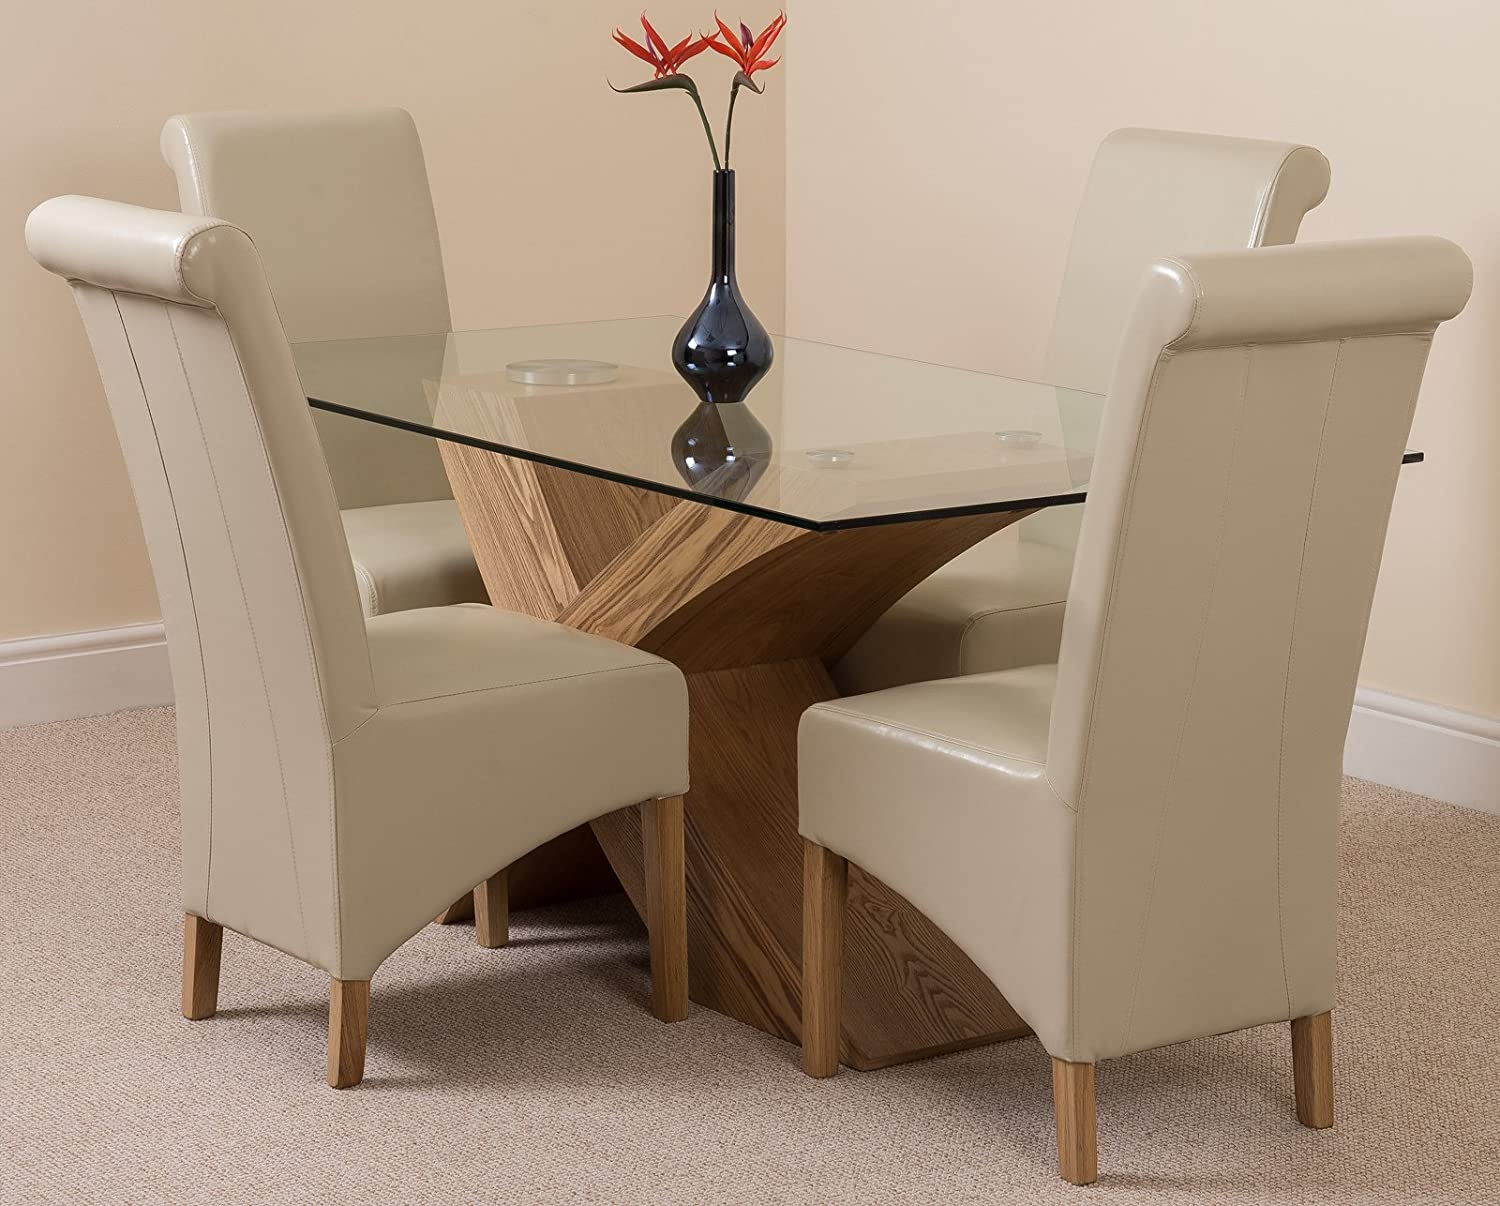 VALENCIA OAK SMALL 160cm x 90cm GLASS DINING TABLE WITH 4 OR 6